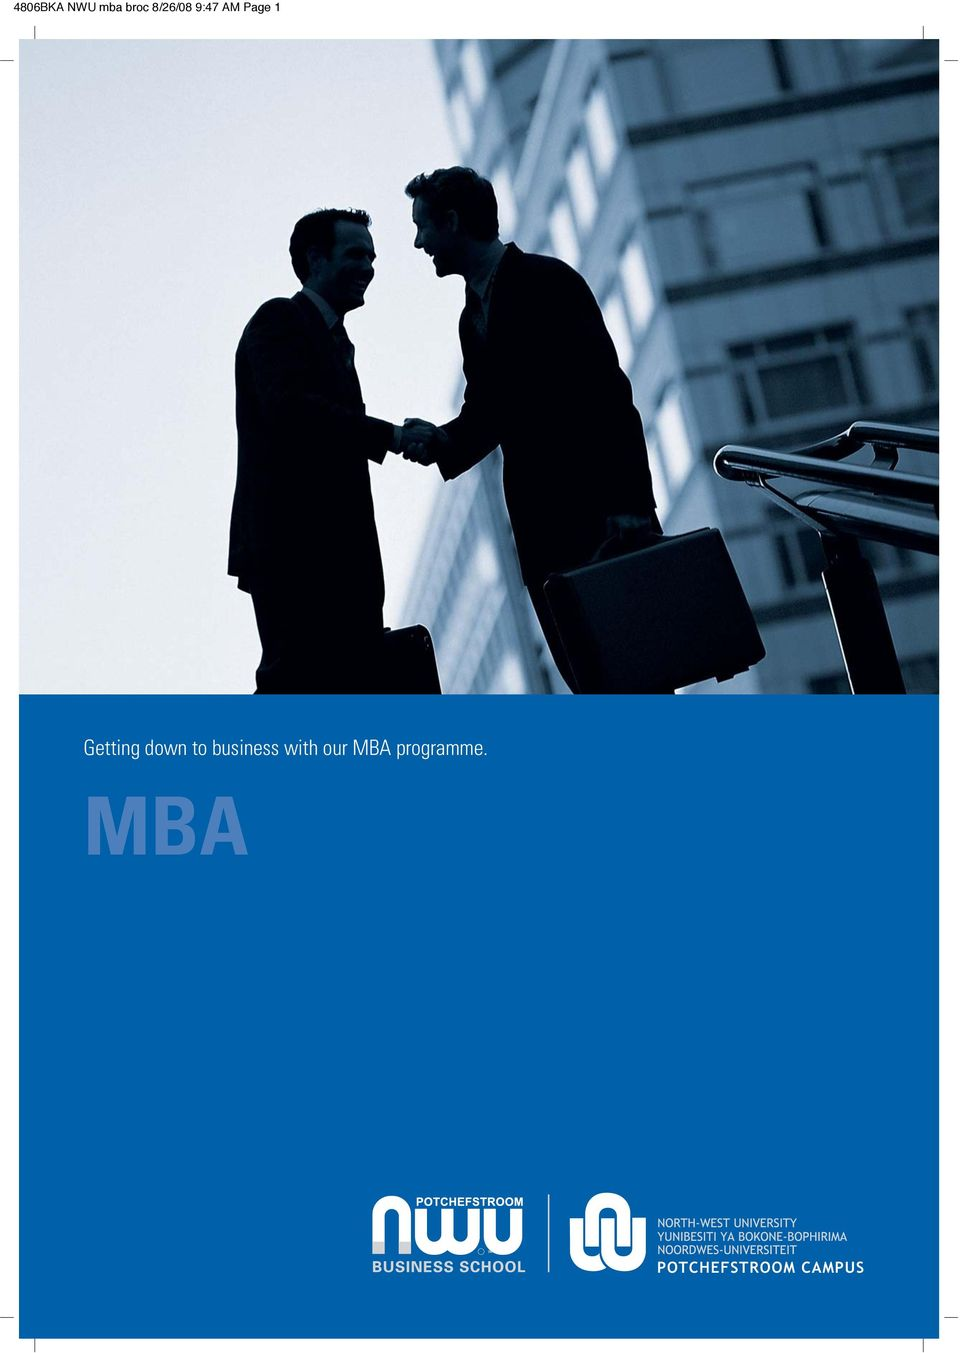 to business with our MBA